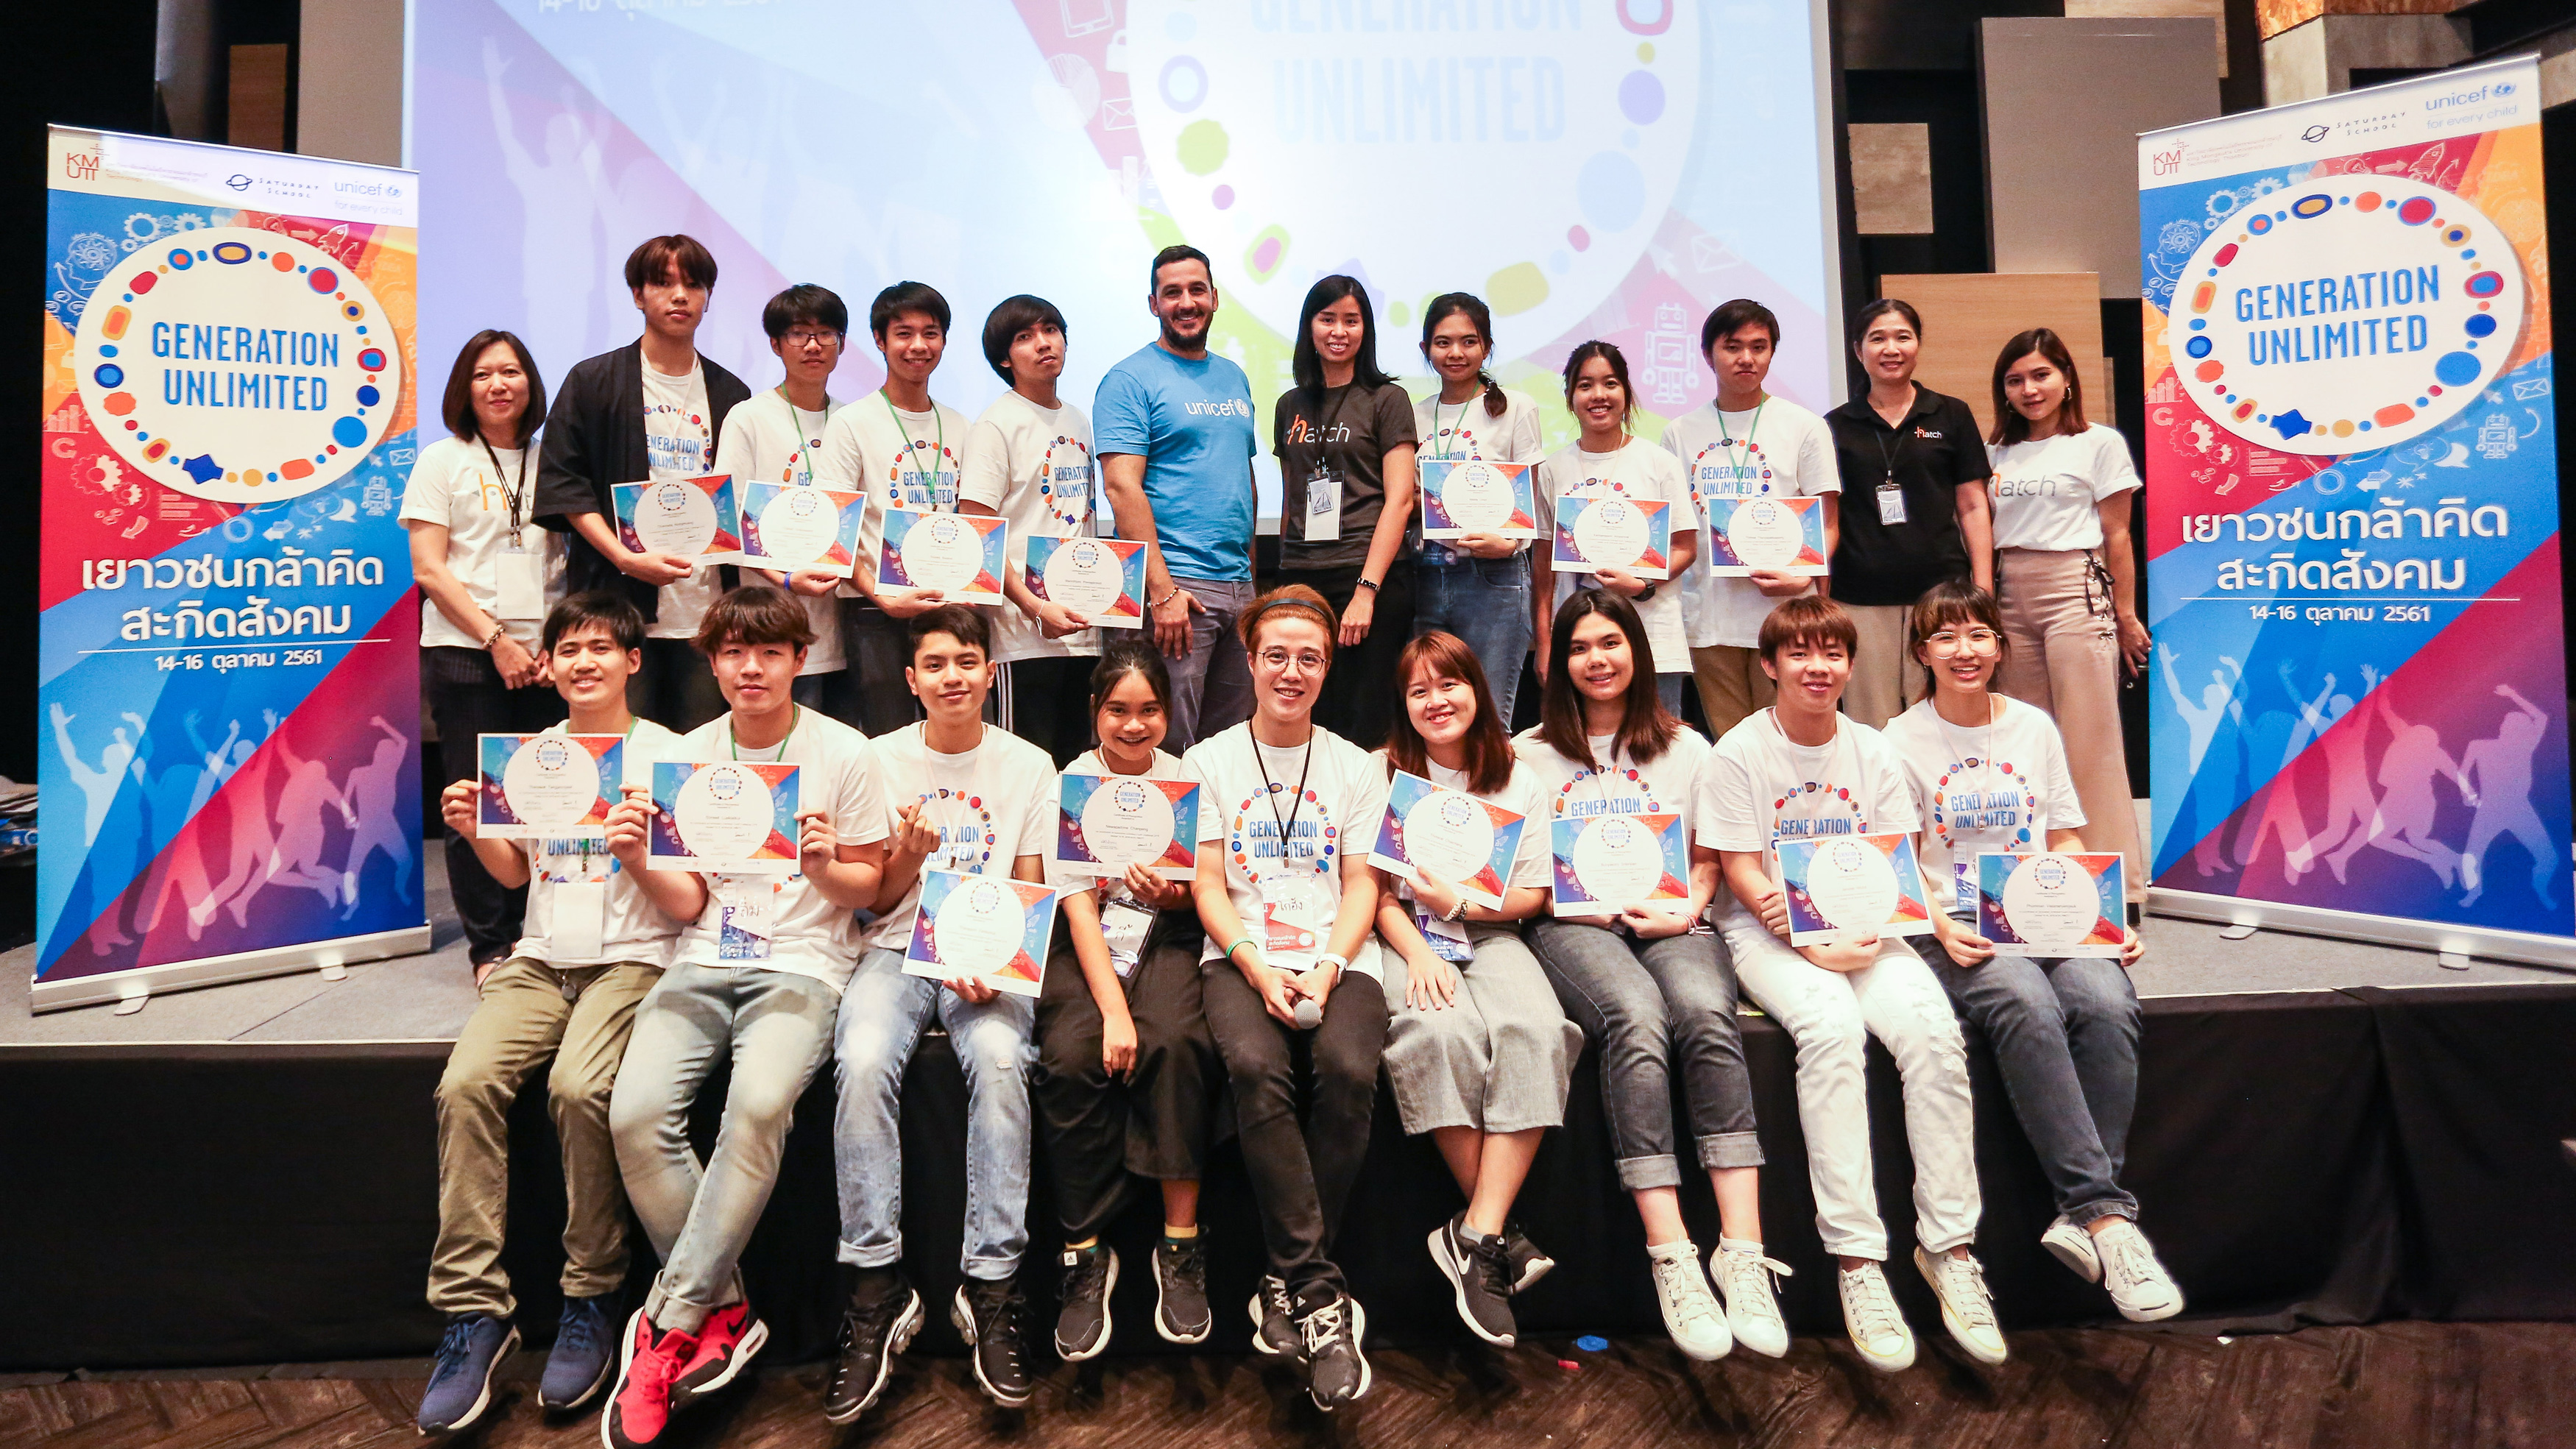 Participants of the Youth Challenge in Thailand pose for a group photo.